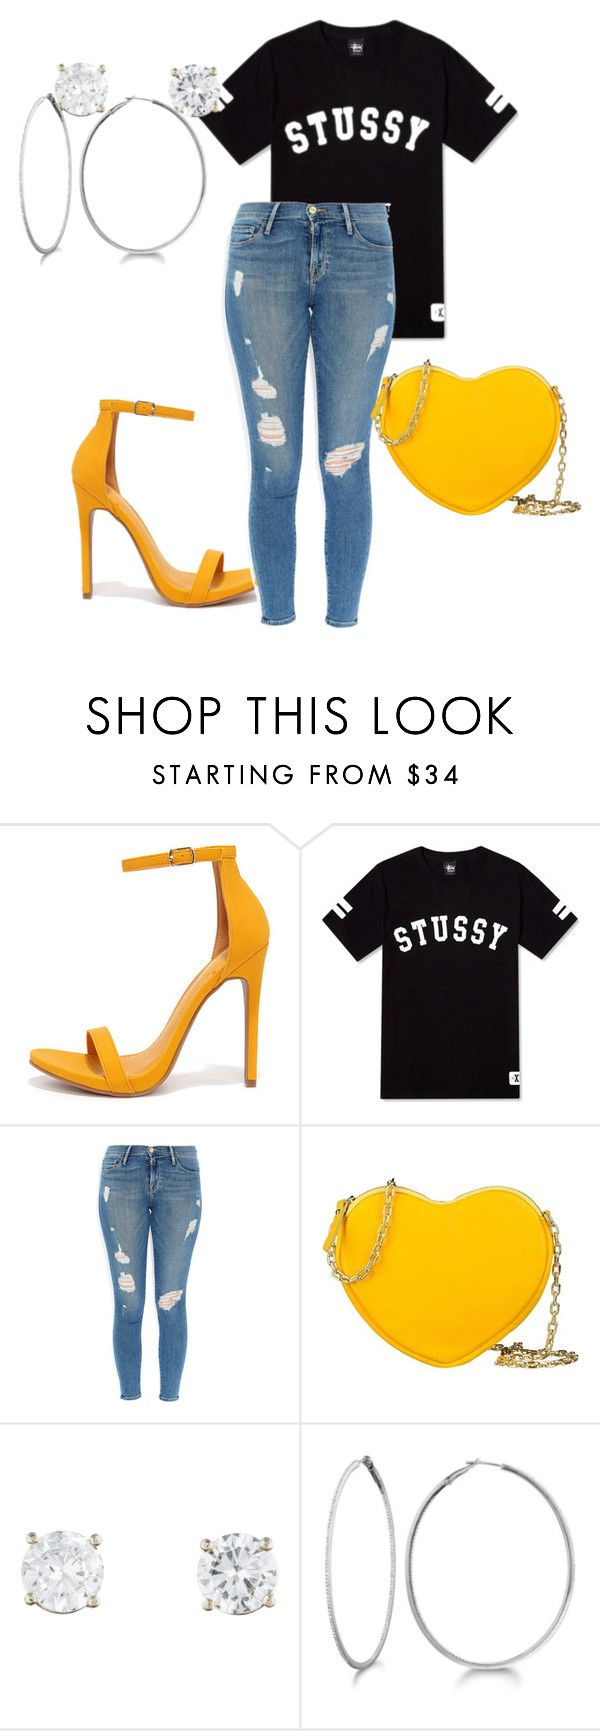 """Out on the Town"" by cooleyindia ❤ liked on Polyvore featuring Shoe Republic LA, Stussy, Frame Denim, George J. Love and Allurez"